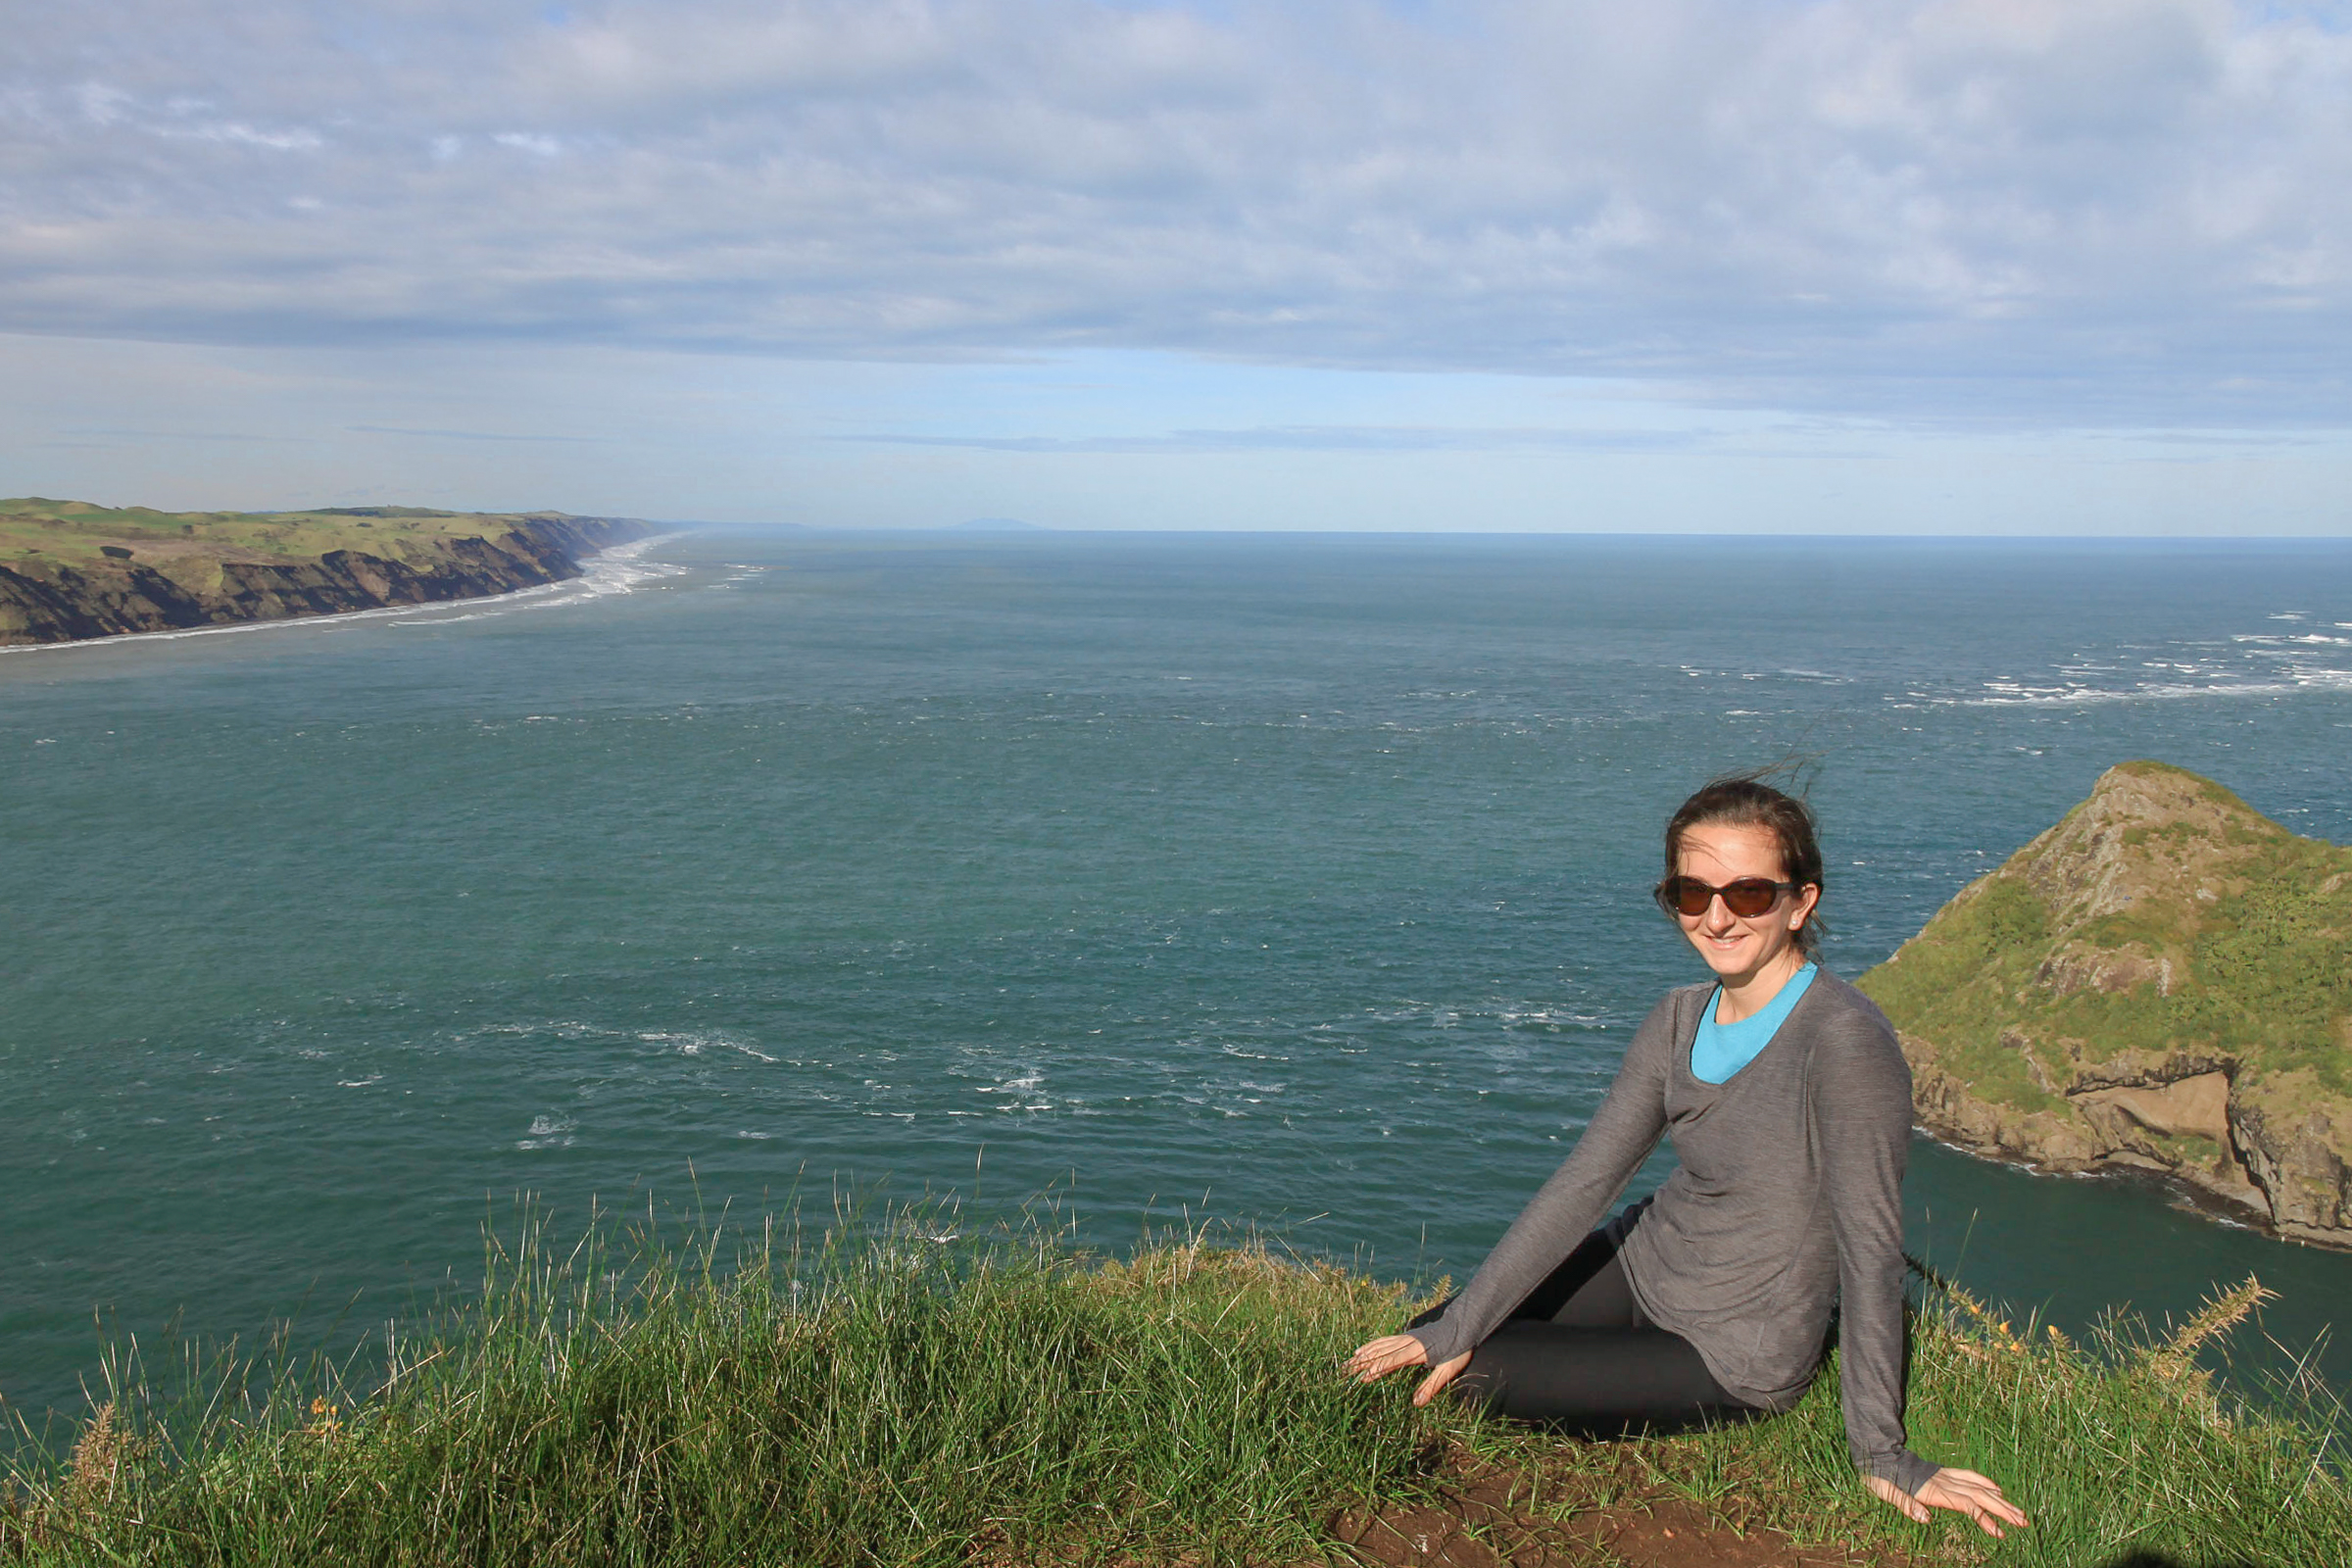 scenic coastal views during a hike in auckland new zealand